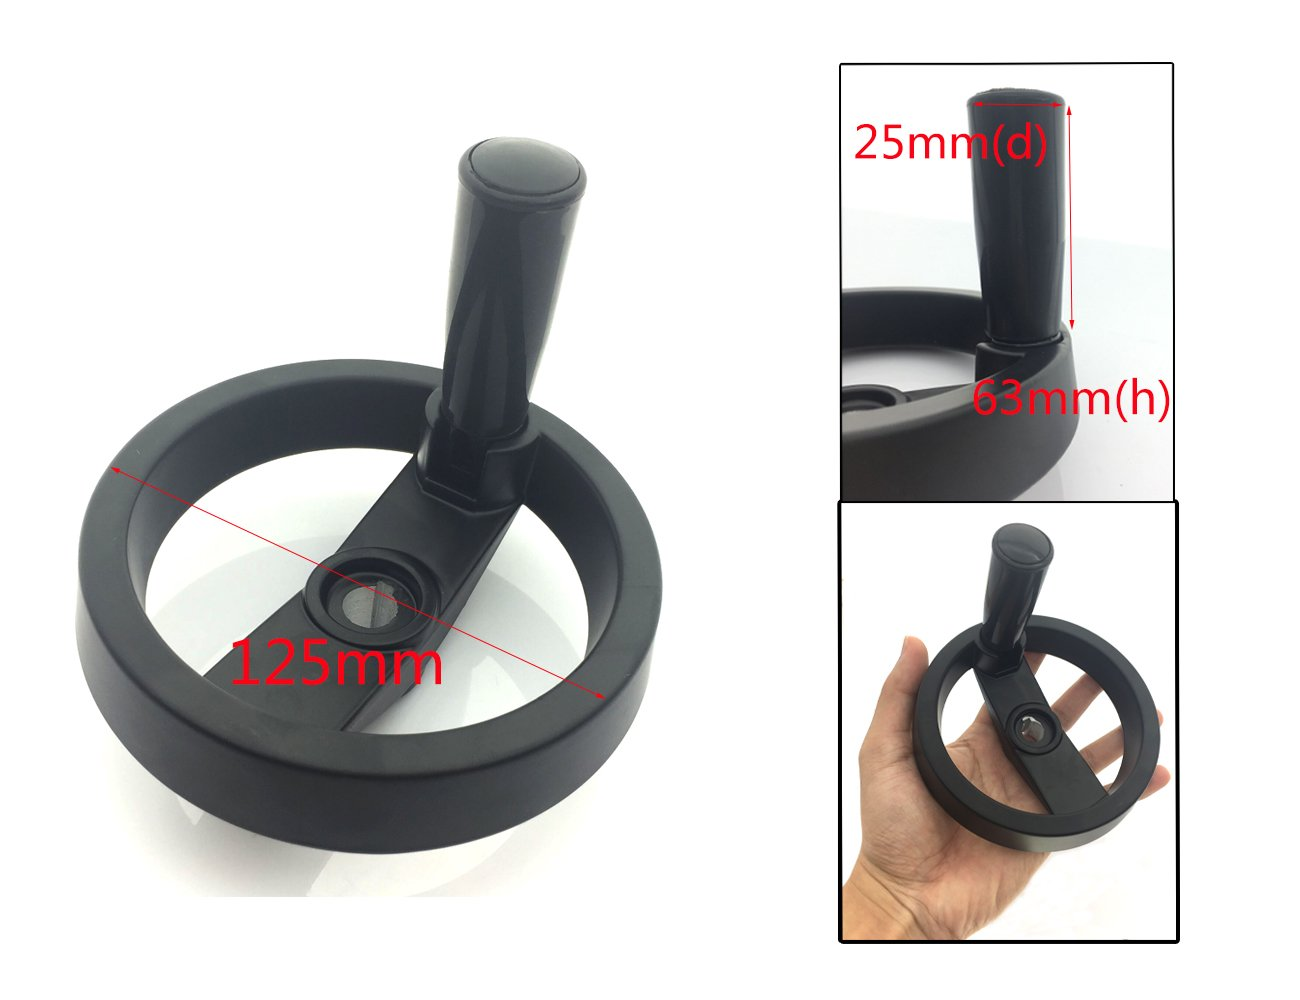 Uxcell a11081400ux0064 10 x 80mm Back Ripple Hand Wheel w Revolving Handle